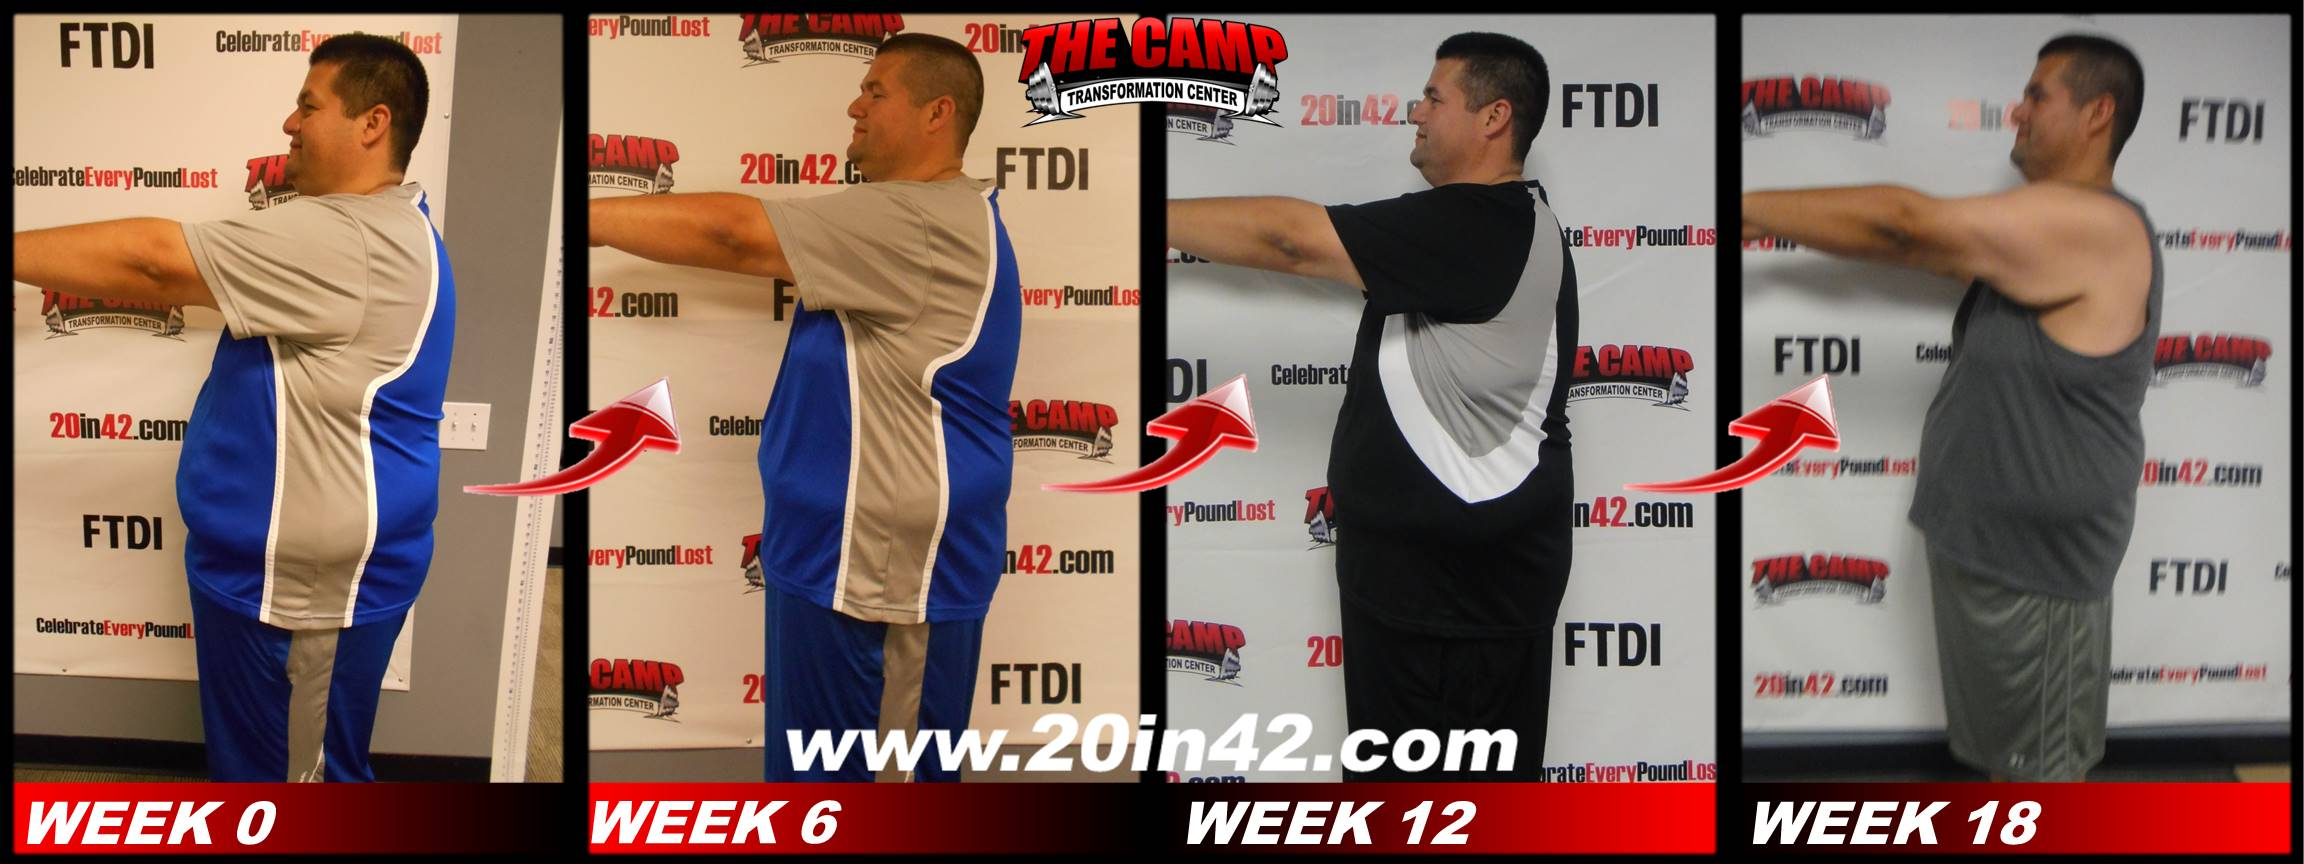 4 images of the same man as in previous photo, shown in profile view, comparing his weight loss after 6, 12, and 18 weeks in the weight loss program